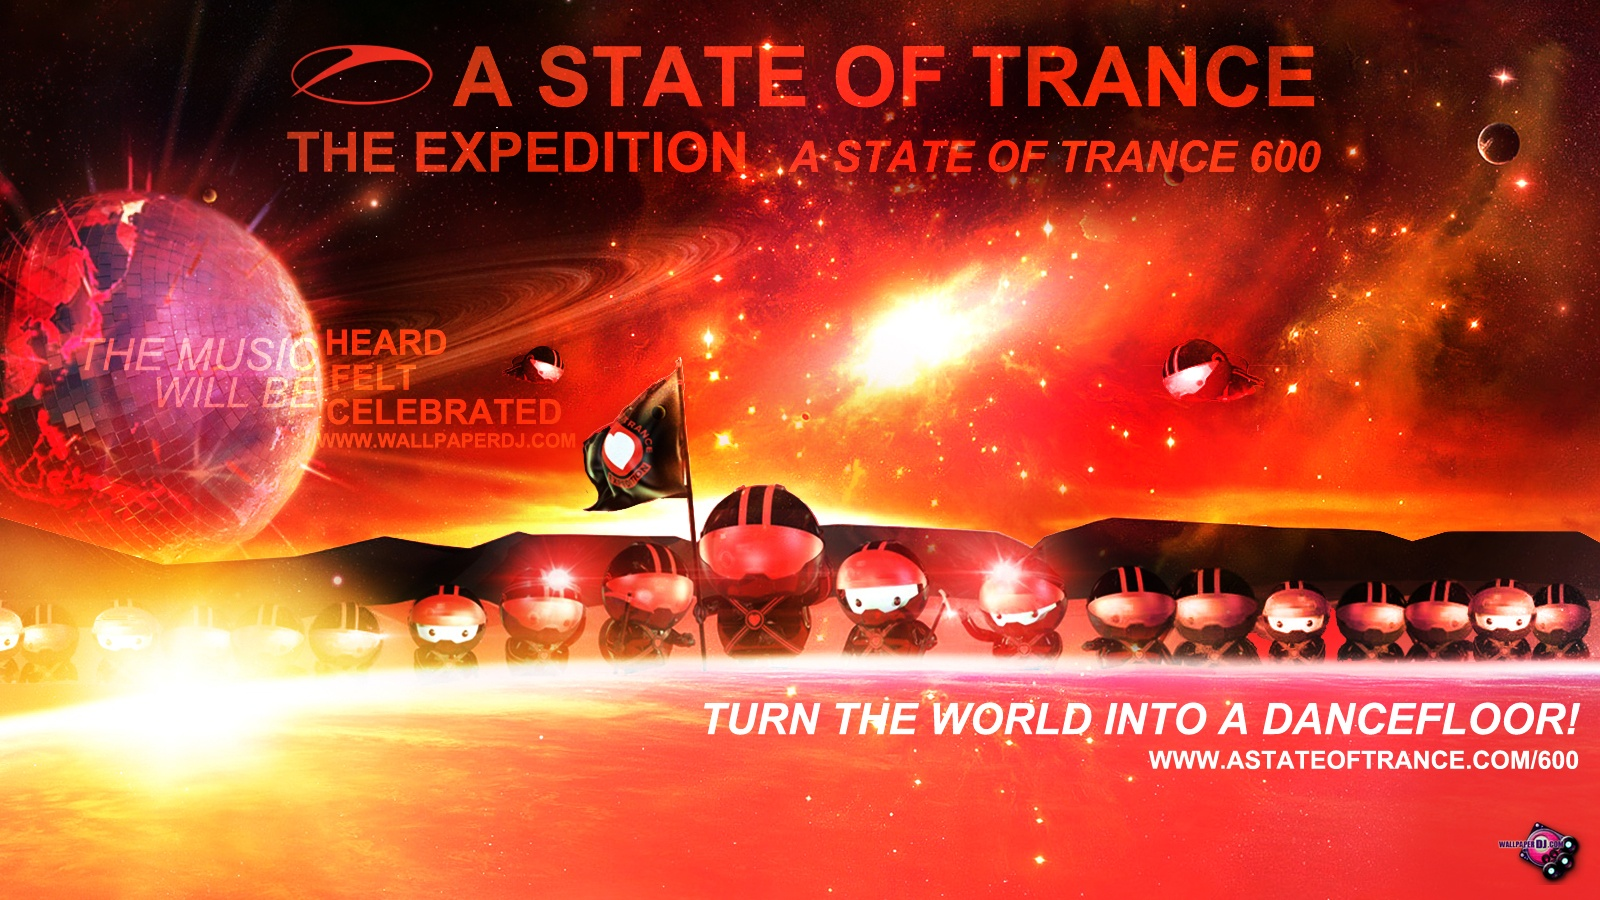 1600x900 A State Of Trance 600 wallpaper music and dance 1600x900